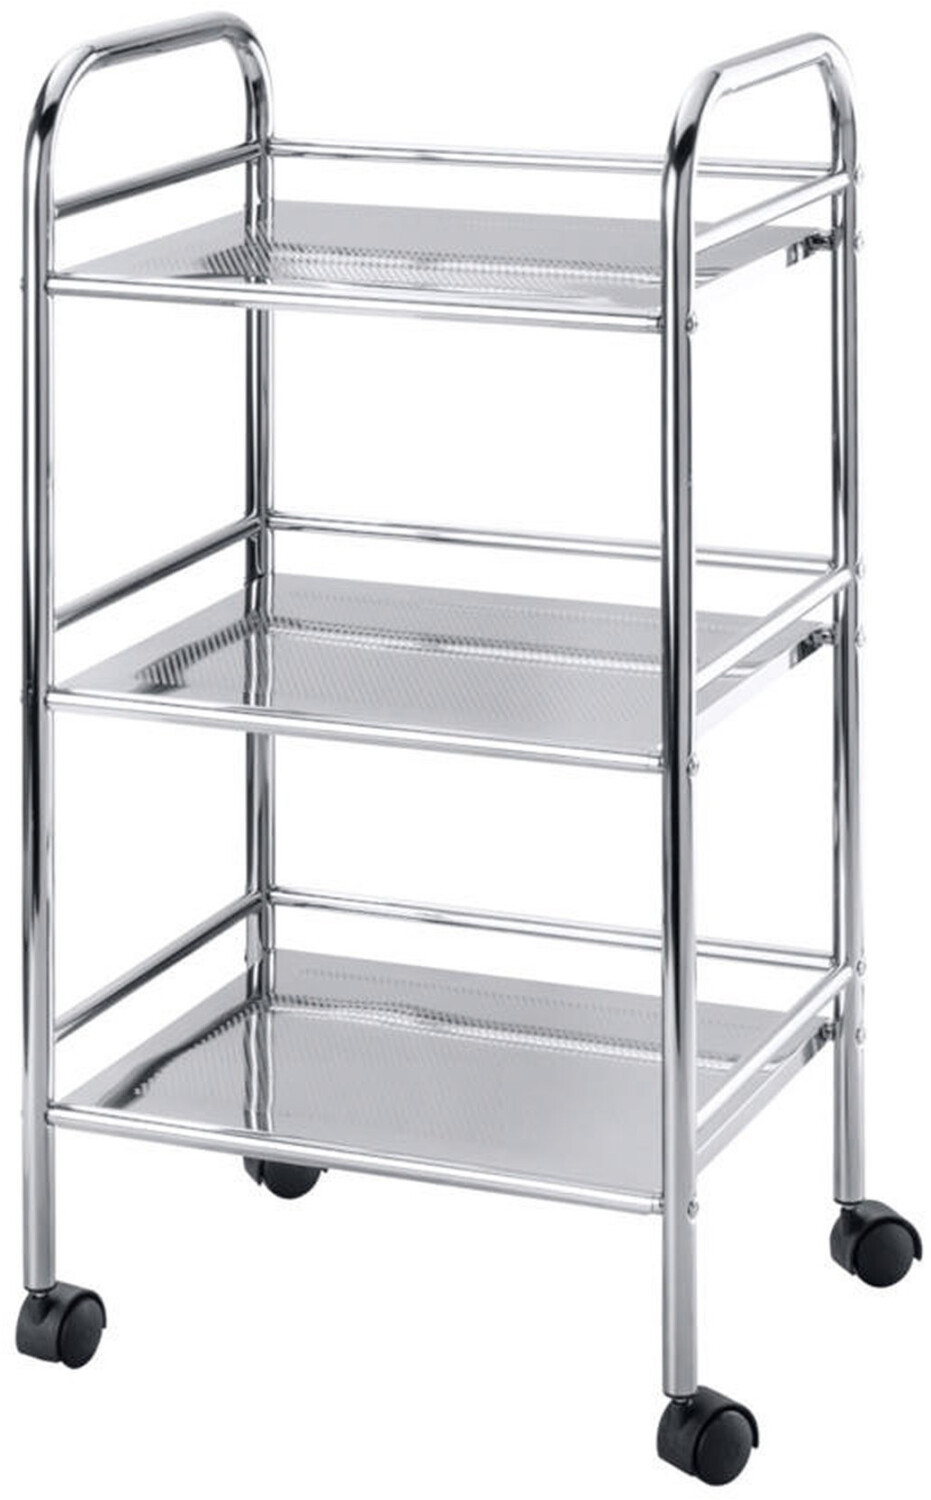 Wenko 3 Tier Shelving Trolley Chrome 12285100